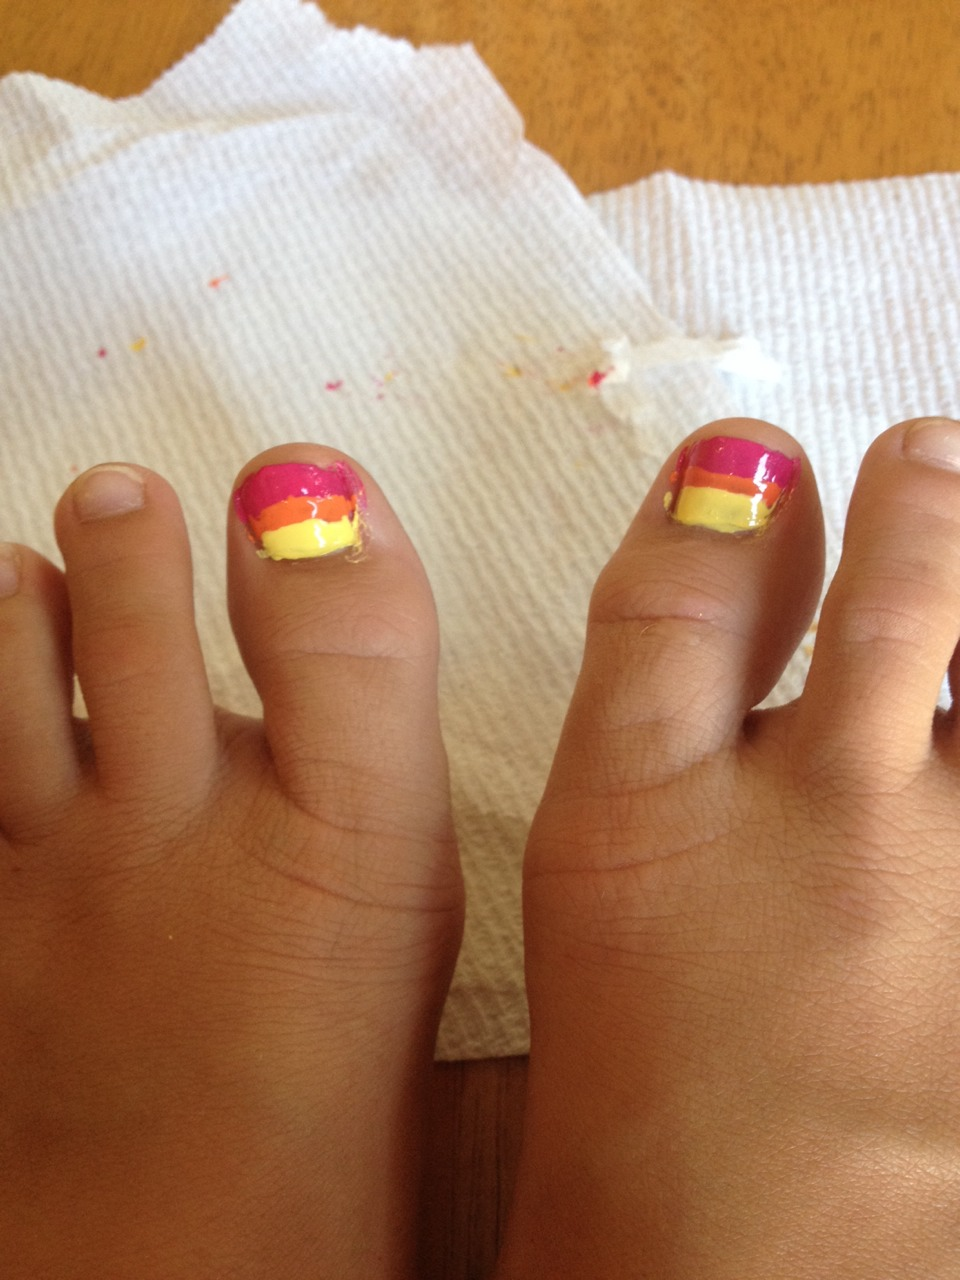 Paint your big toe in stripes using the hot pink, yellow, and orange. You can do this by using a thin brush to paint the individual stripes.